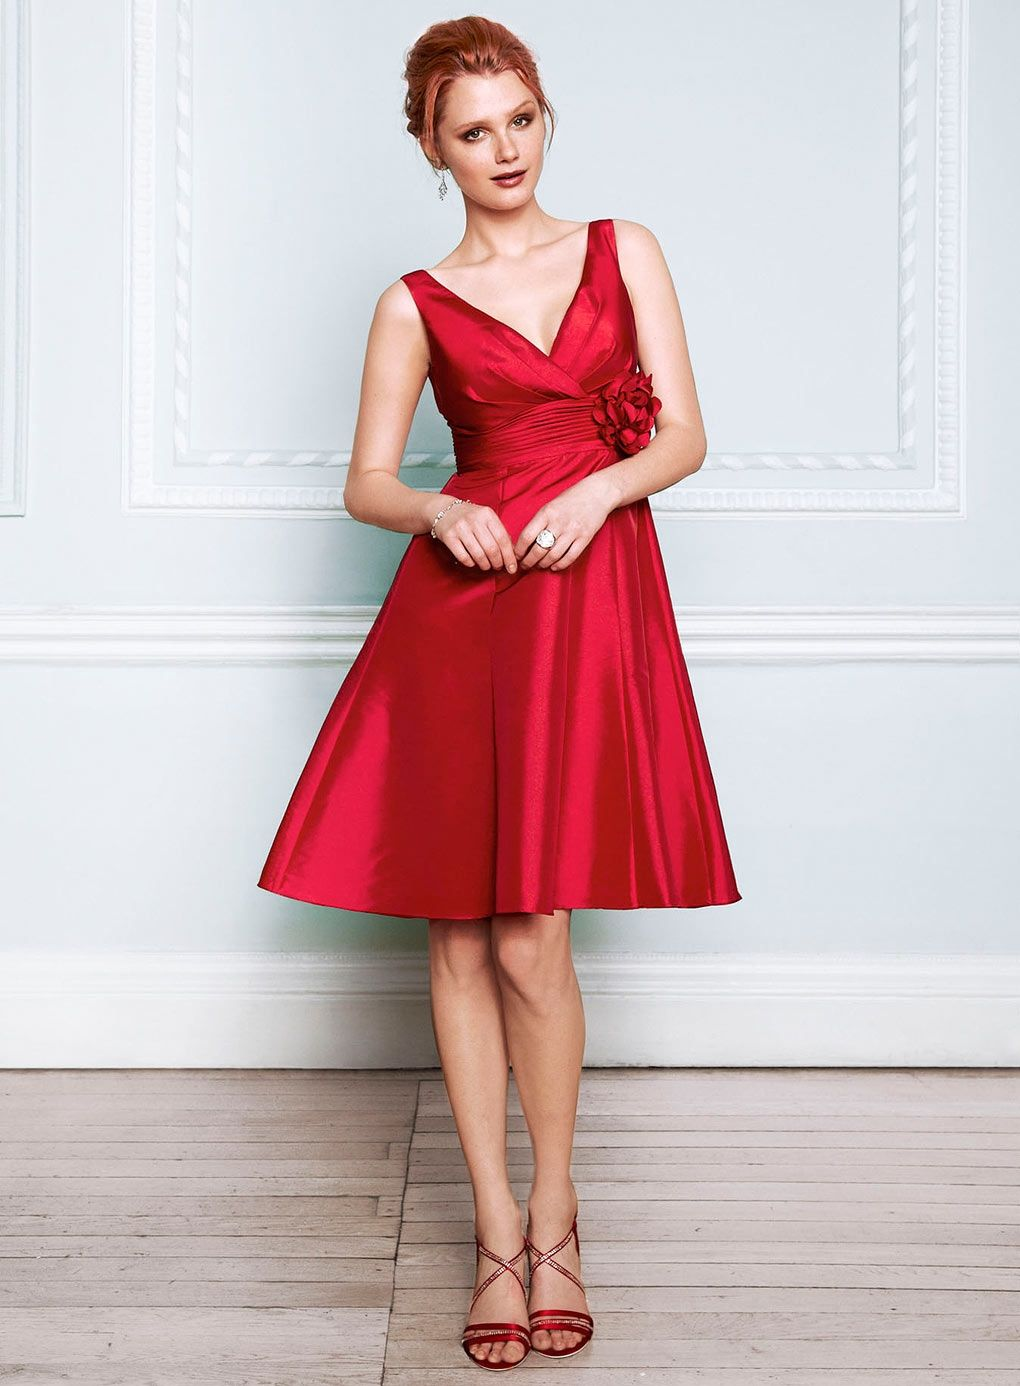 Bridesmaid dresses in red top 300 red bridesmaid dresses short red bridesmaid dress hire all bridesmaid dresses ombrellifo Images